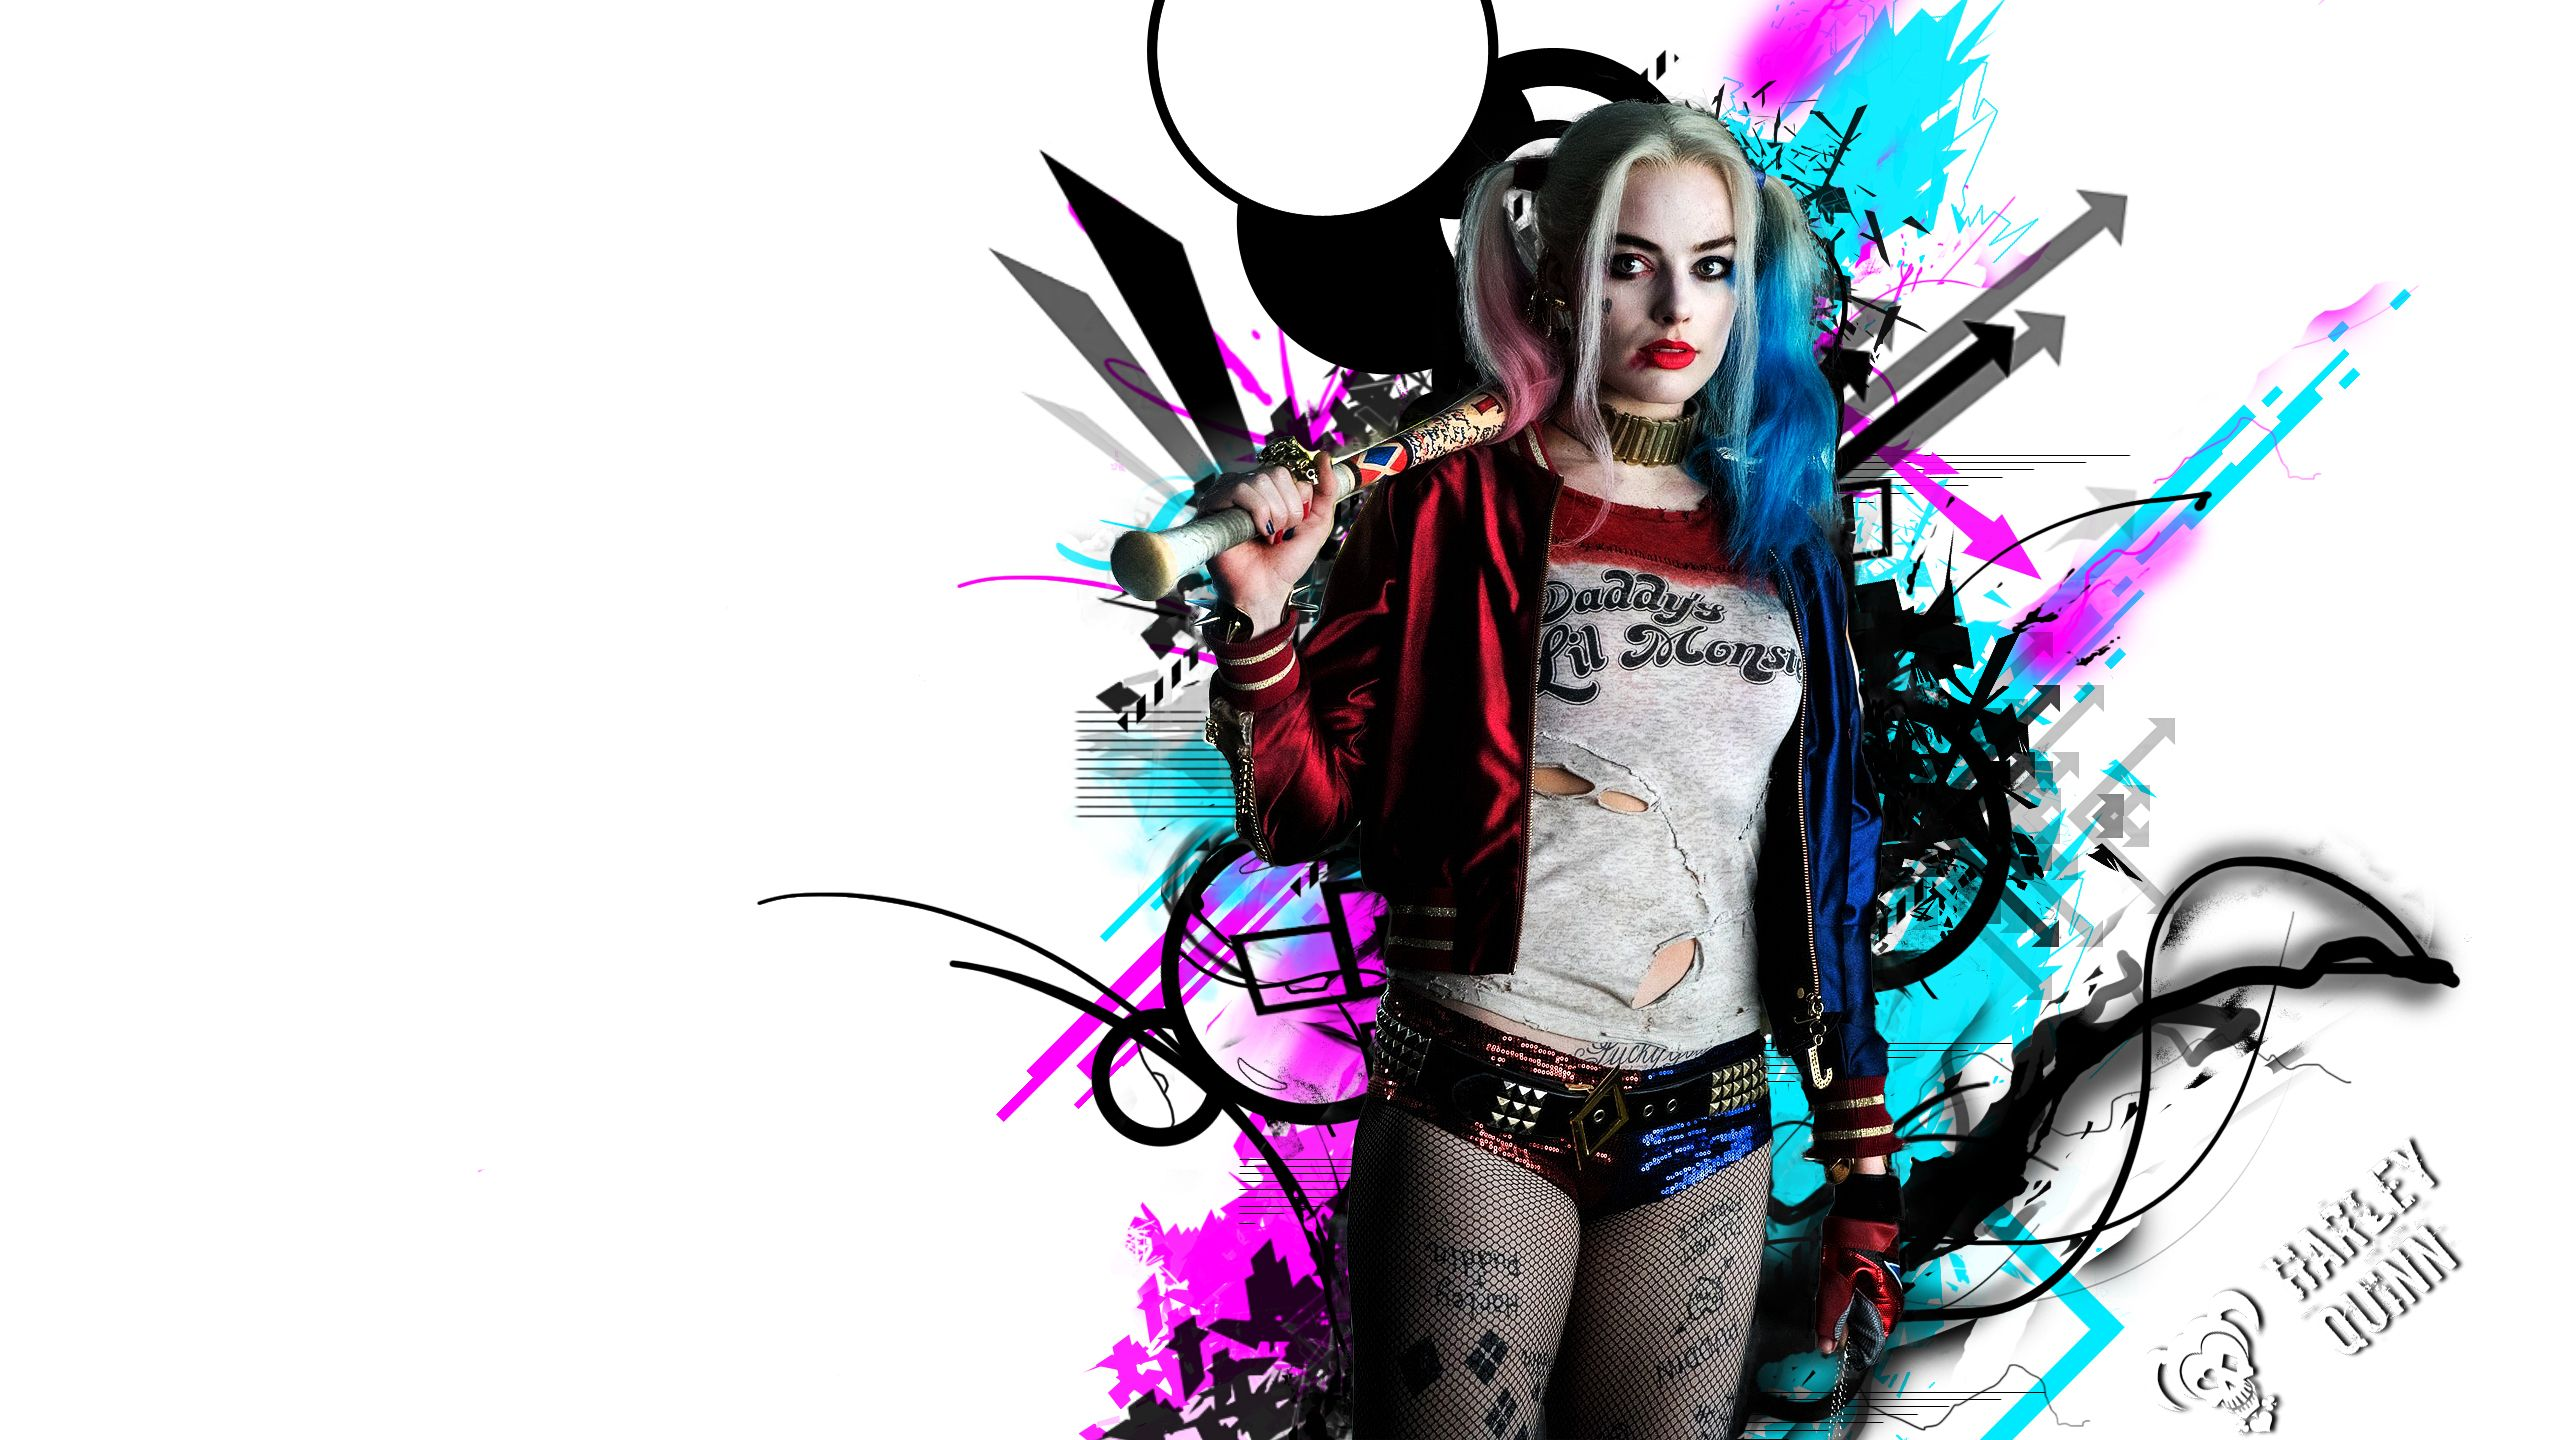 2560x1440 Harley Quinn HD, HD Movies, 4k Wallpapers, Images, Backgrounds ...